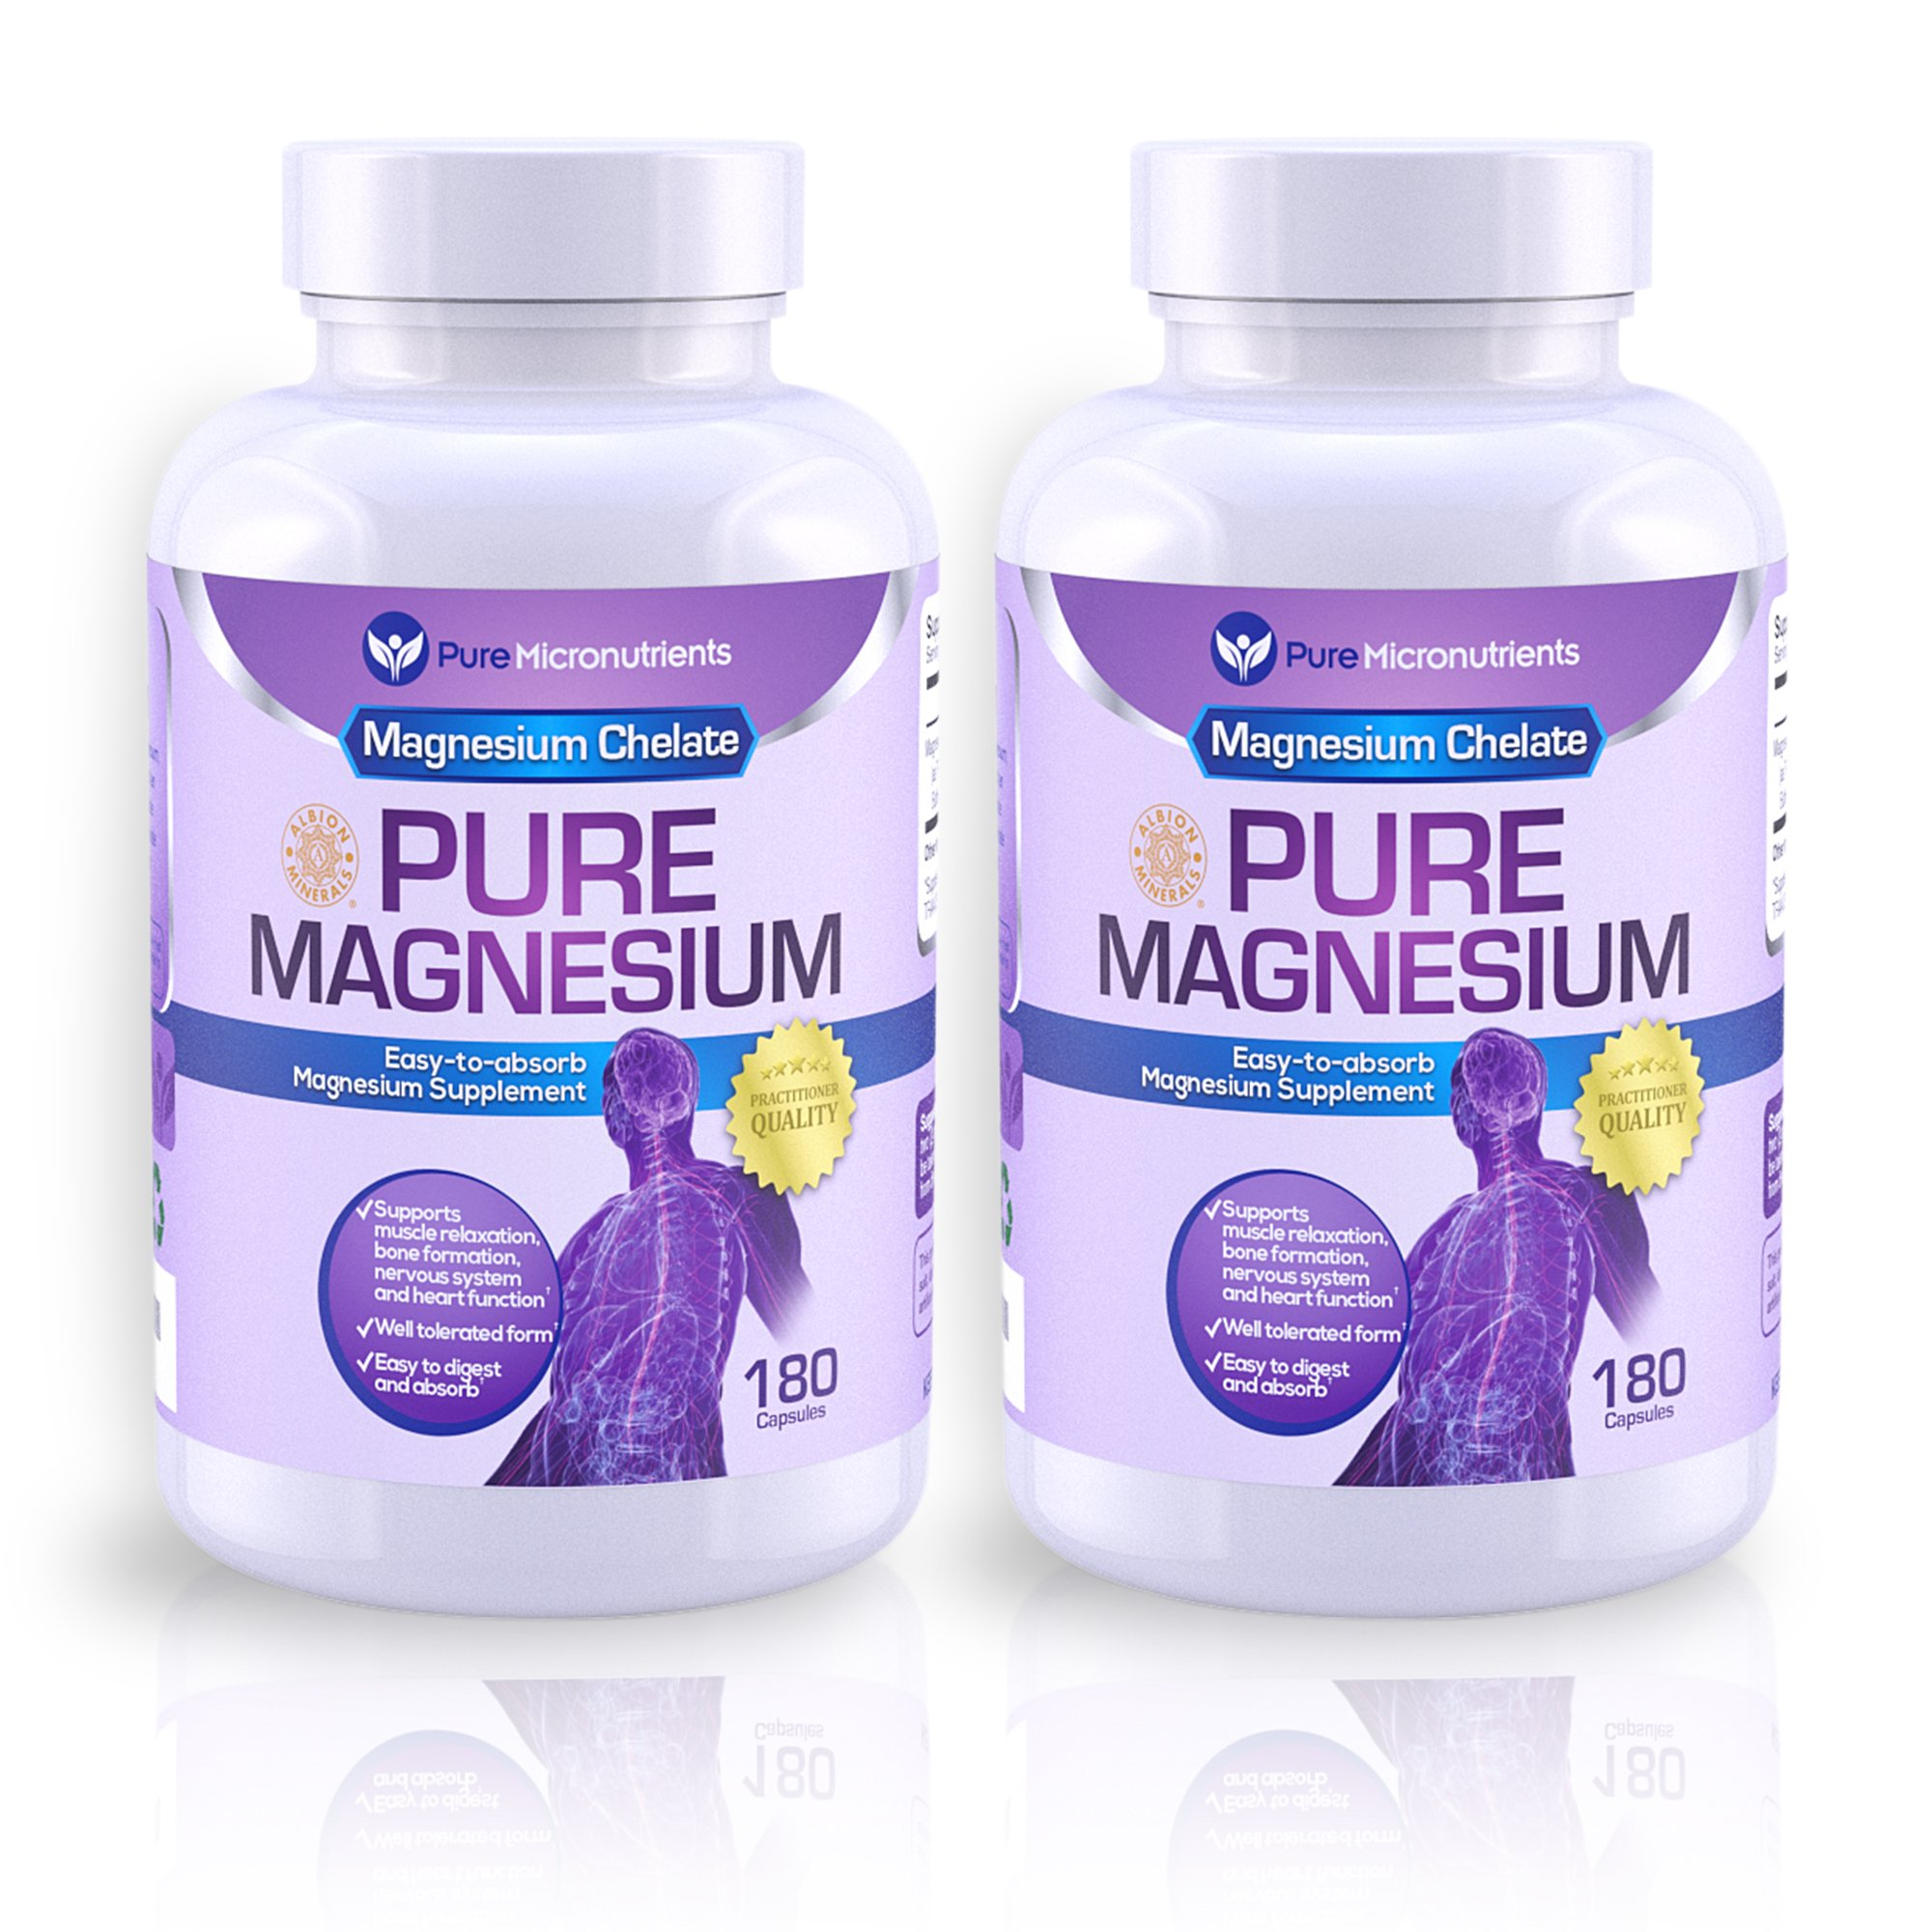 Magnesium Supplements, 200mg, 180ct - Best Buy Value 2-Pack (2) - Pure Micronutrients